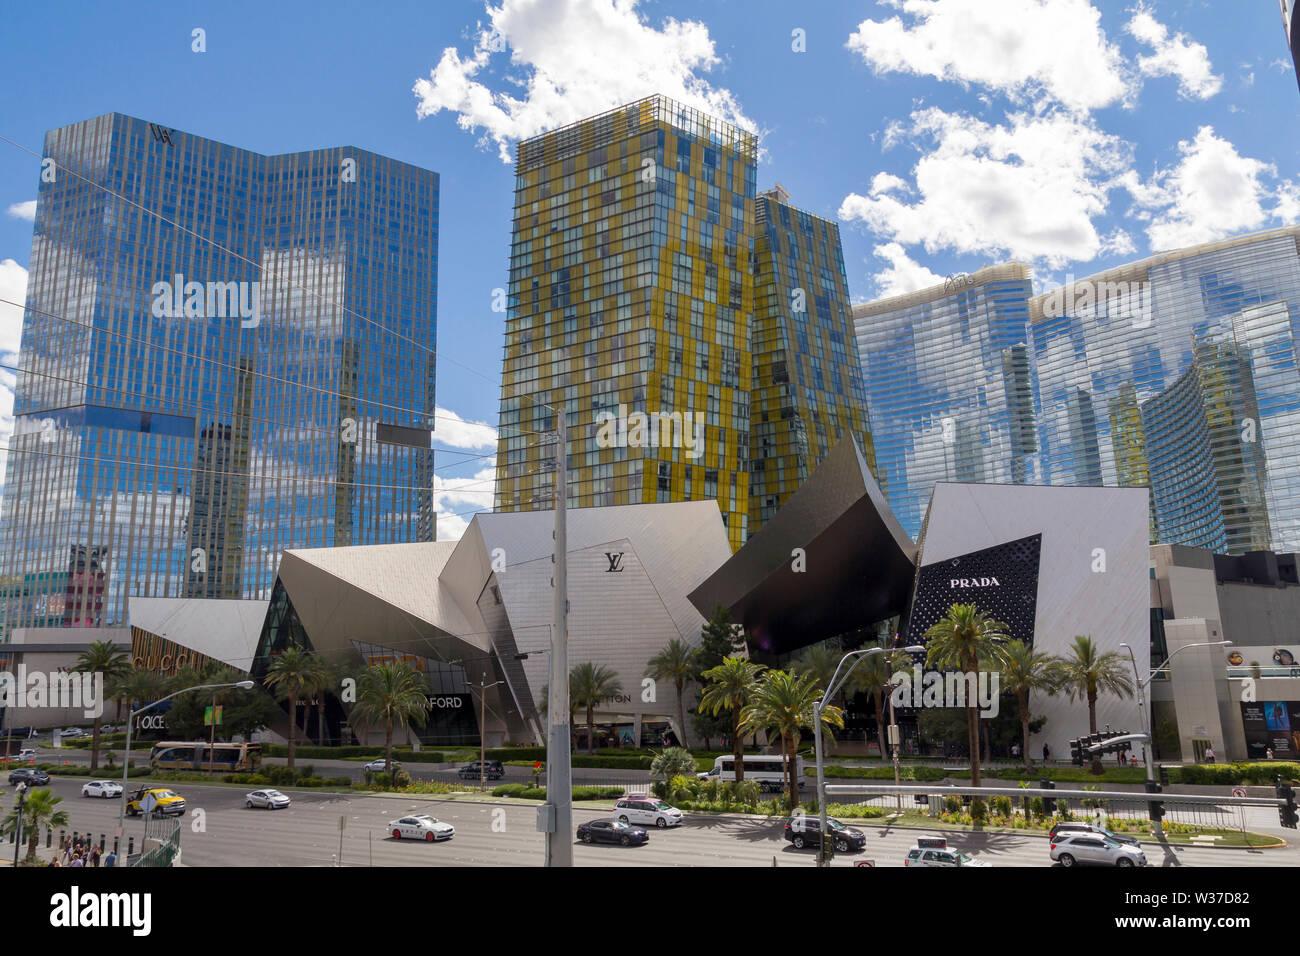 Las Vegas, Nevada, United States: May 21, 2019: Las Vegas Strip, casino and hotels city view with modern architecture and luxury stores - Stock Image